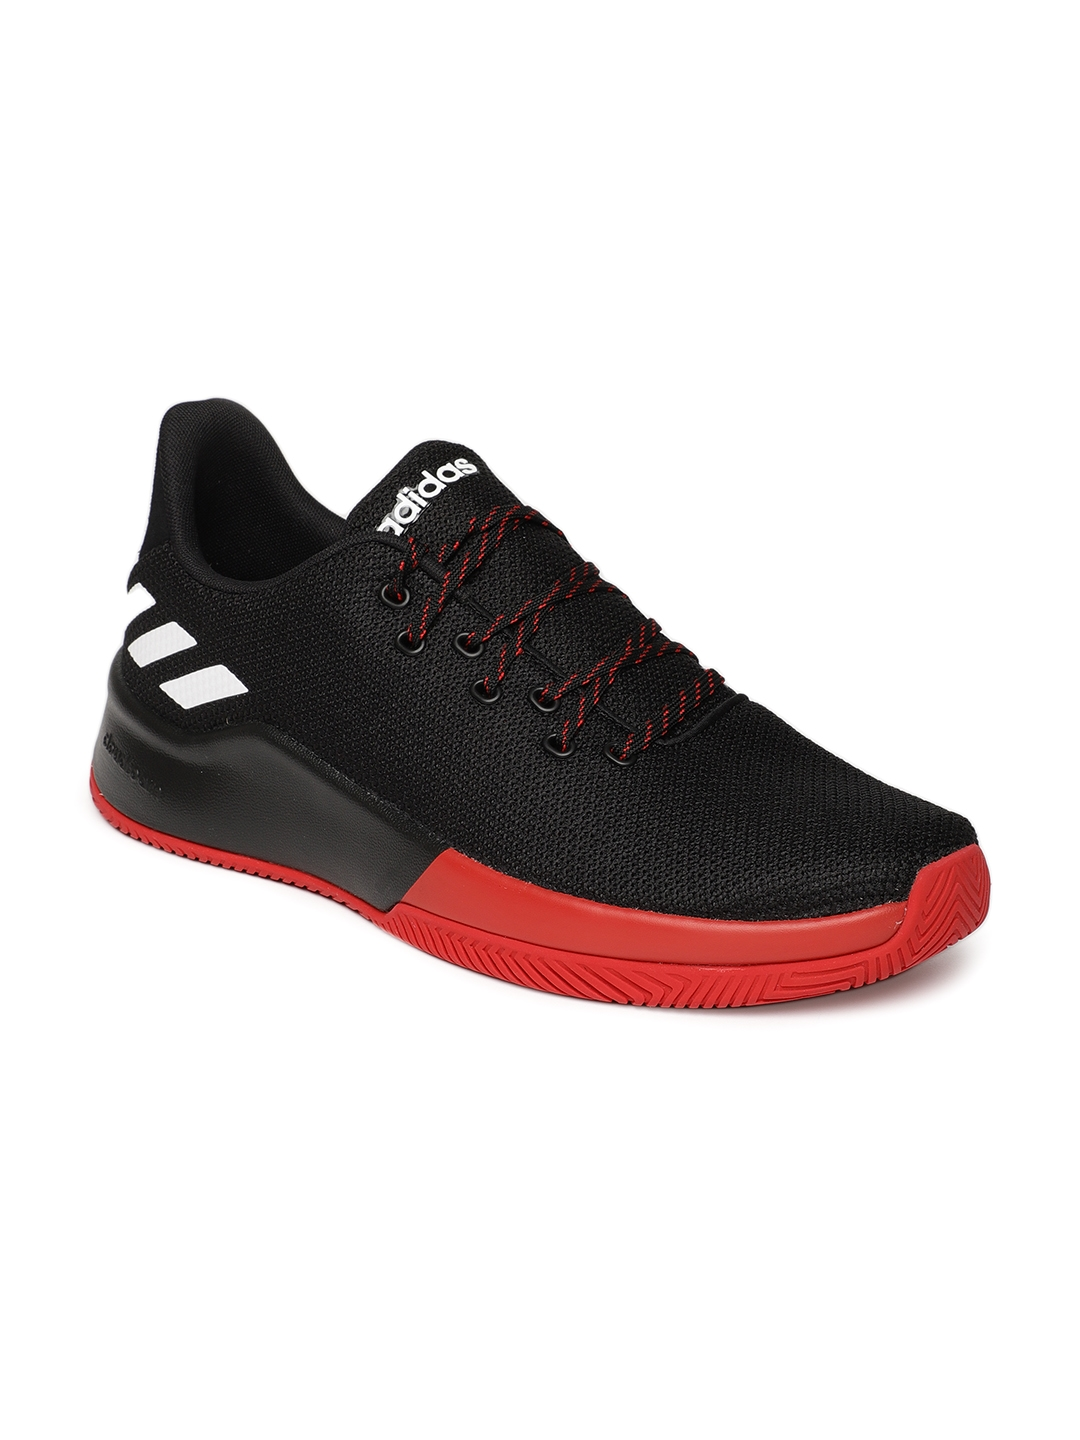 07f2c0d2e49e Buy ADIDAS Men Black   Red SPEEDBREAK Basketball Shoes - Sports ...